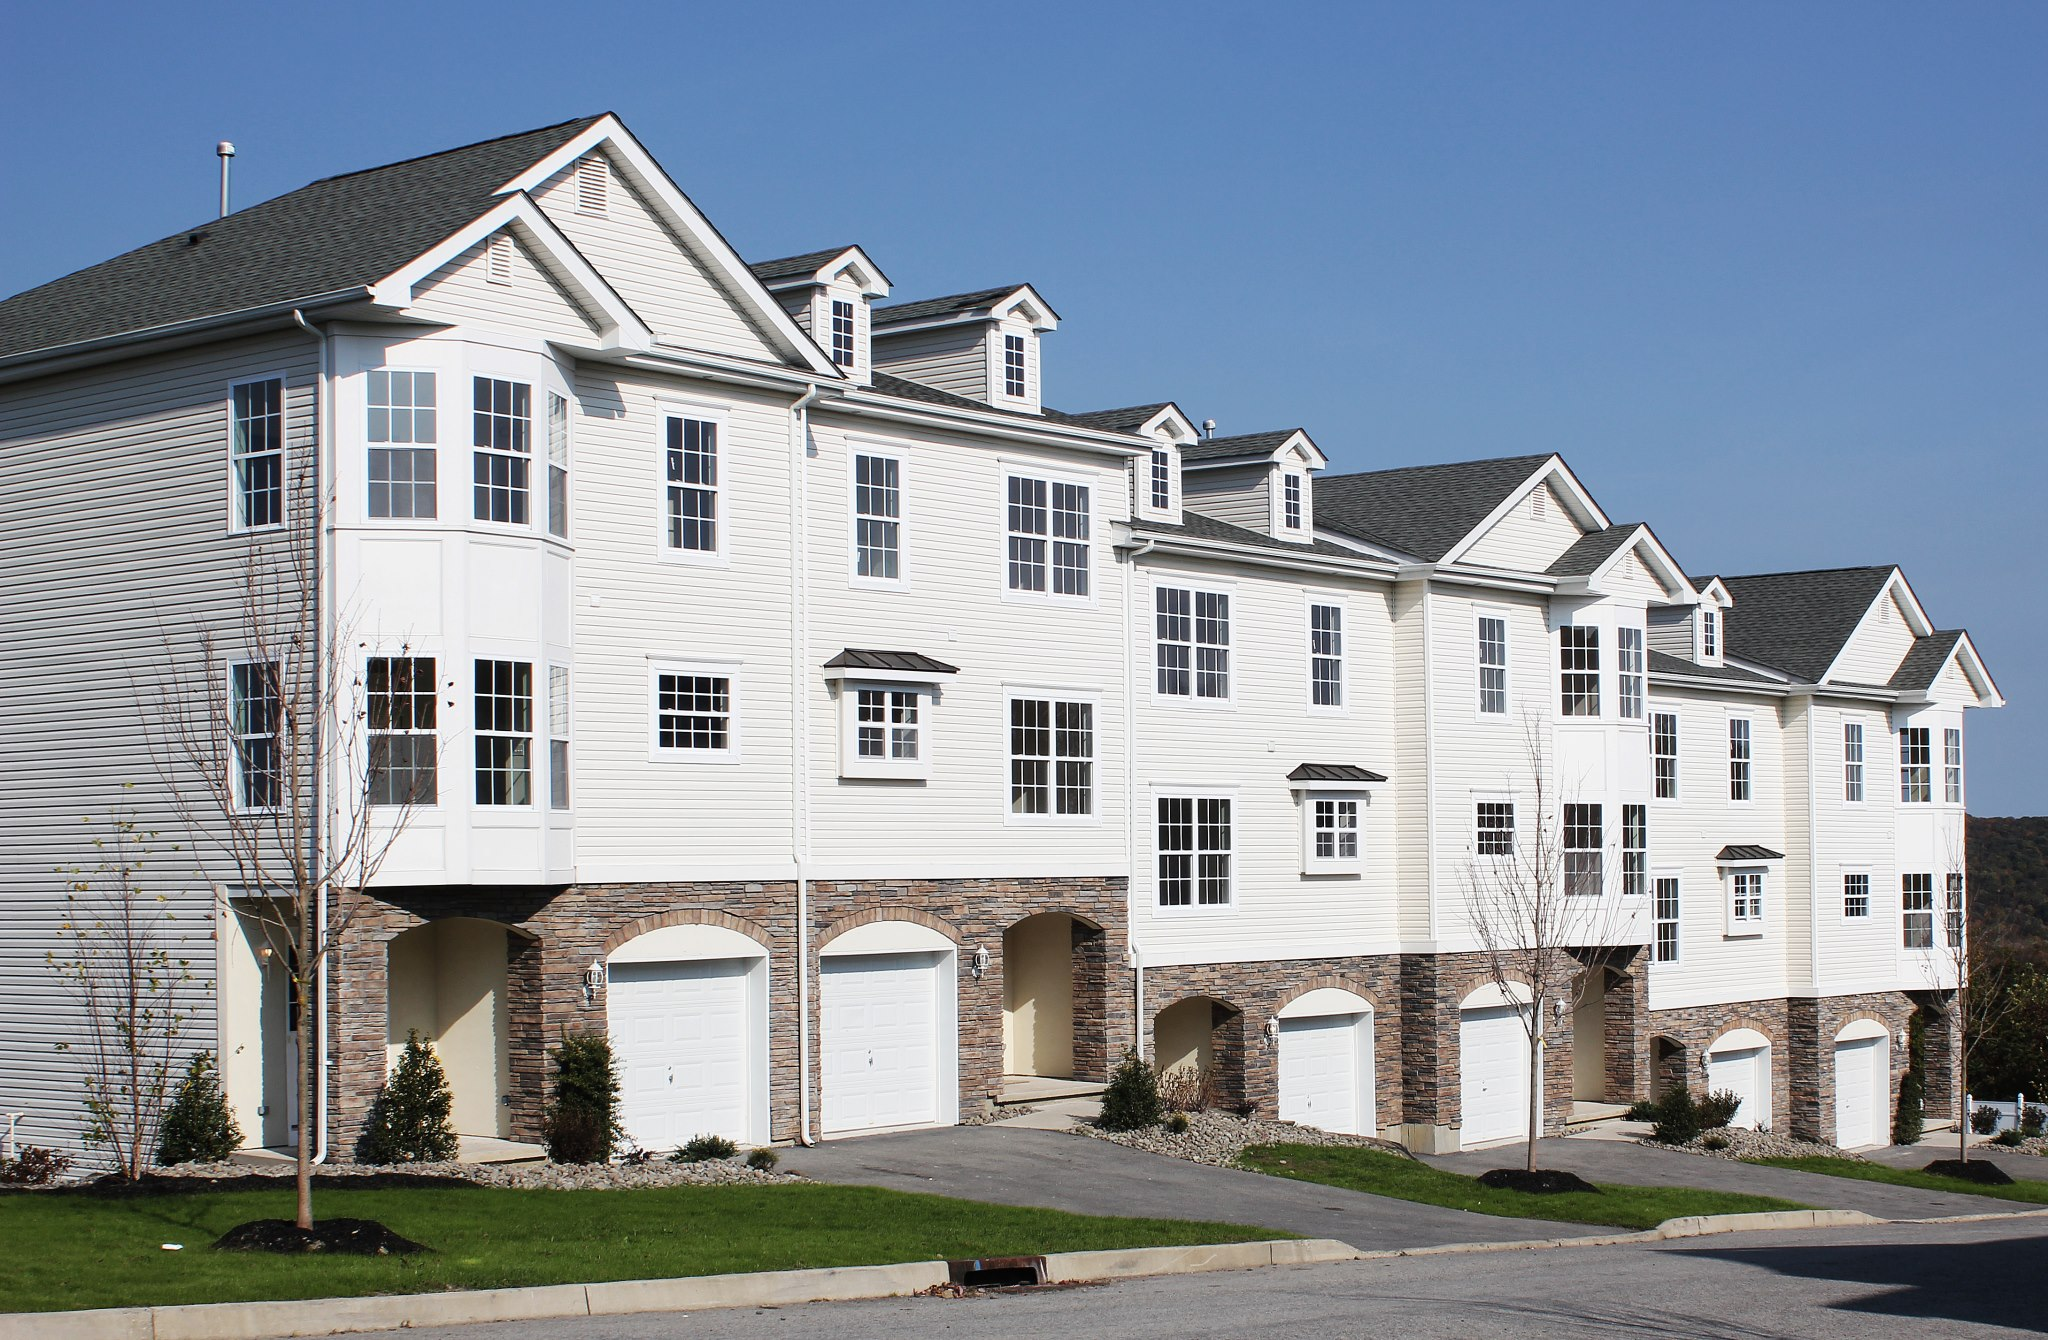 Better Homes And Garden Rand Realty Announces New Lawrence Farm Townhomes Now Available In